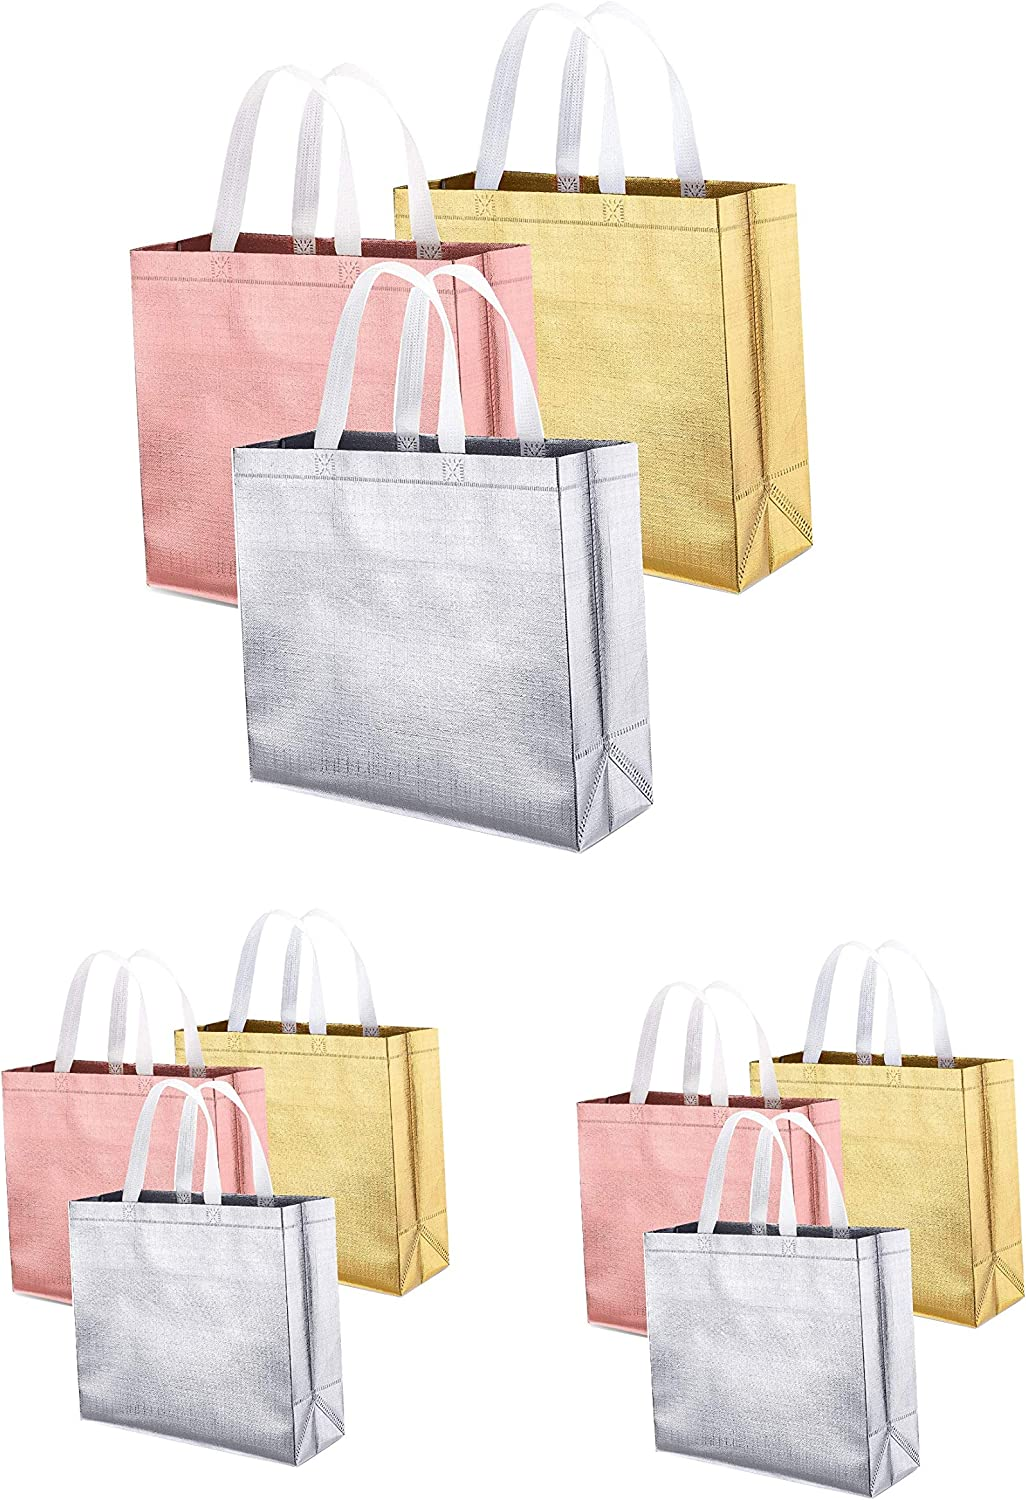 Reusable Grocery Bags, 9pack Tote Bags Non-woven Glossy Waterproof Durable Fashionable Stand-up Bags with Fancy Colors for Shopping Daily Organization Wedding Promotion Party Event (9 Pack)